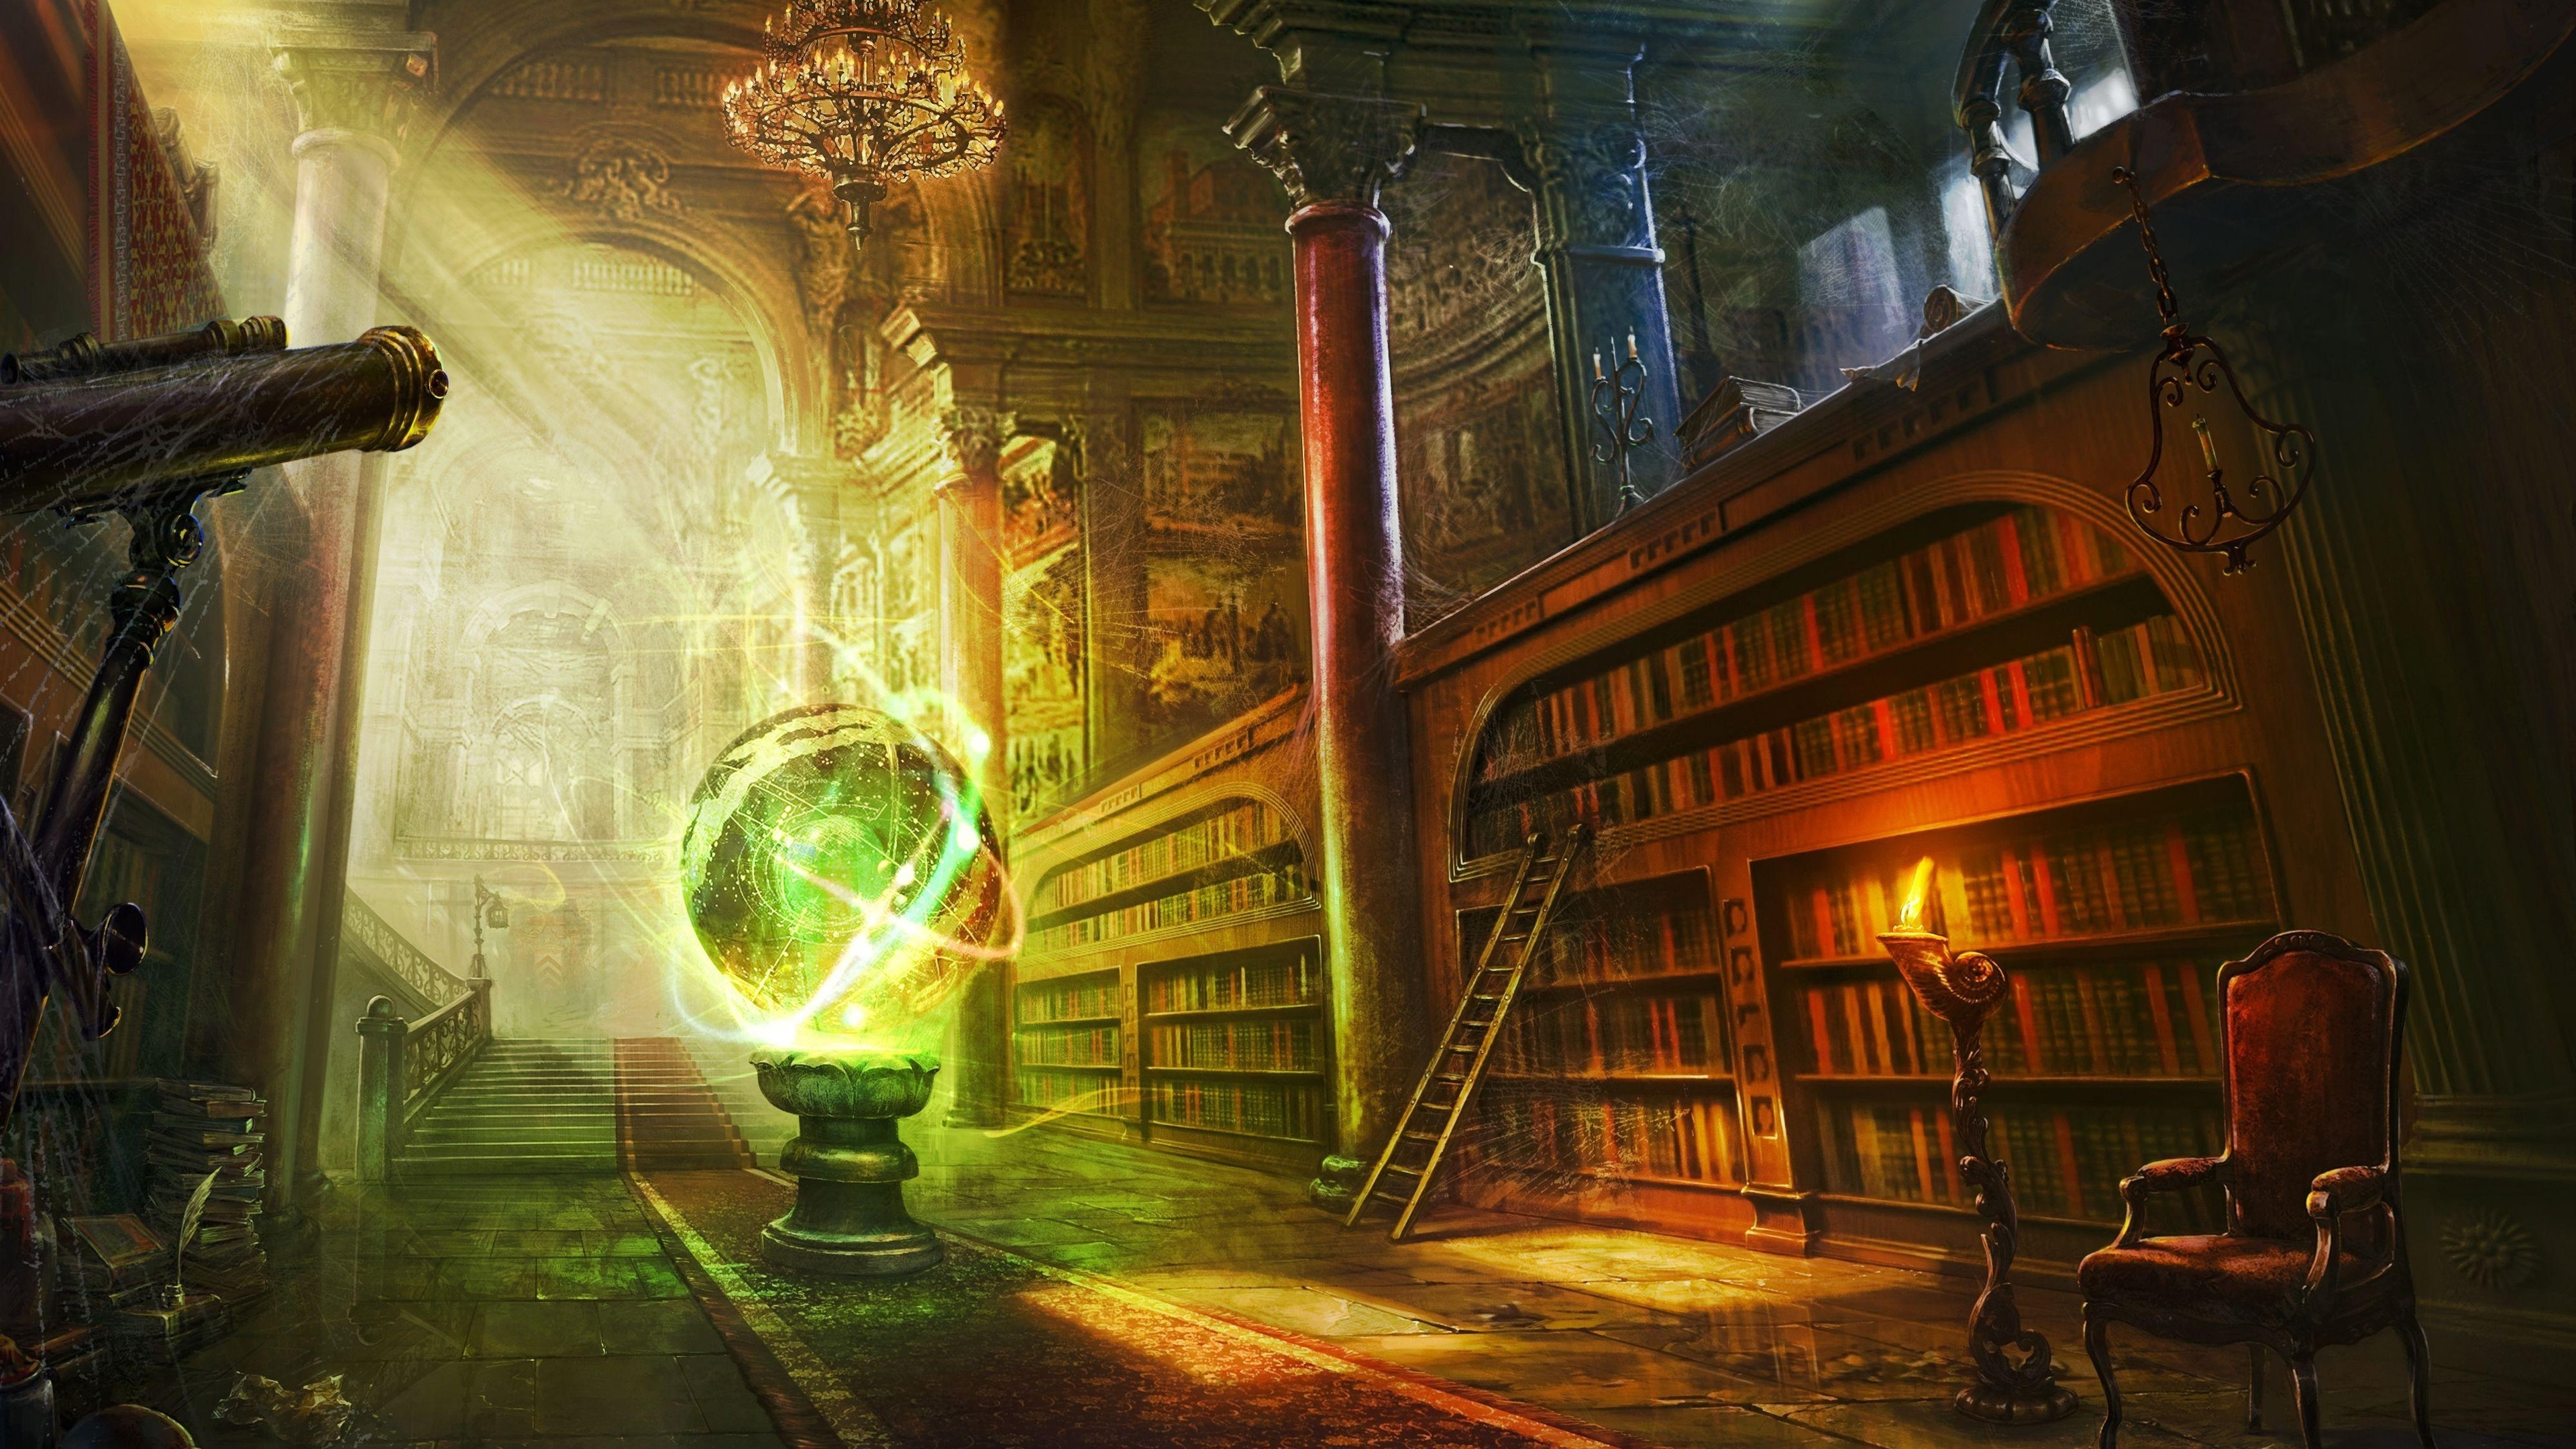 Rascunho do Spectro Magic-ball-library-books_3840x2160